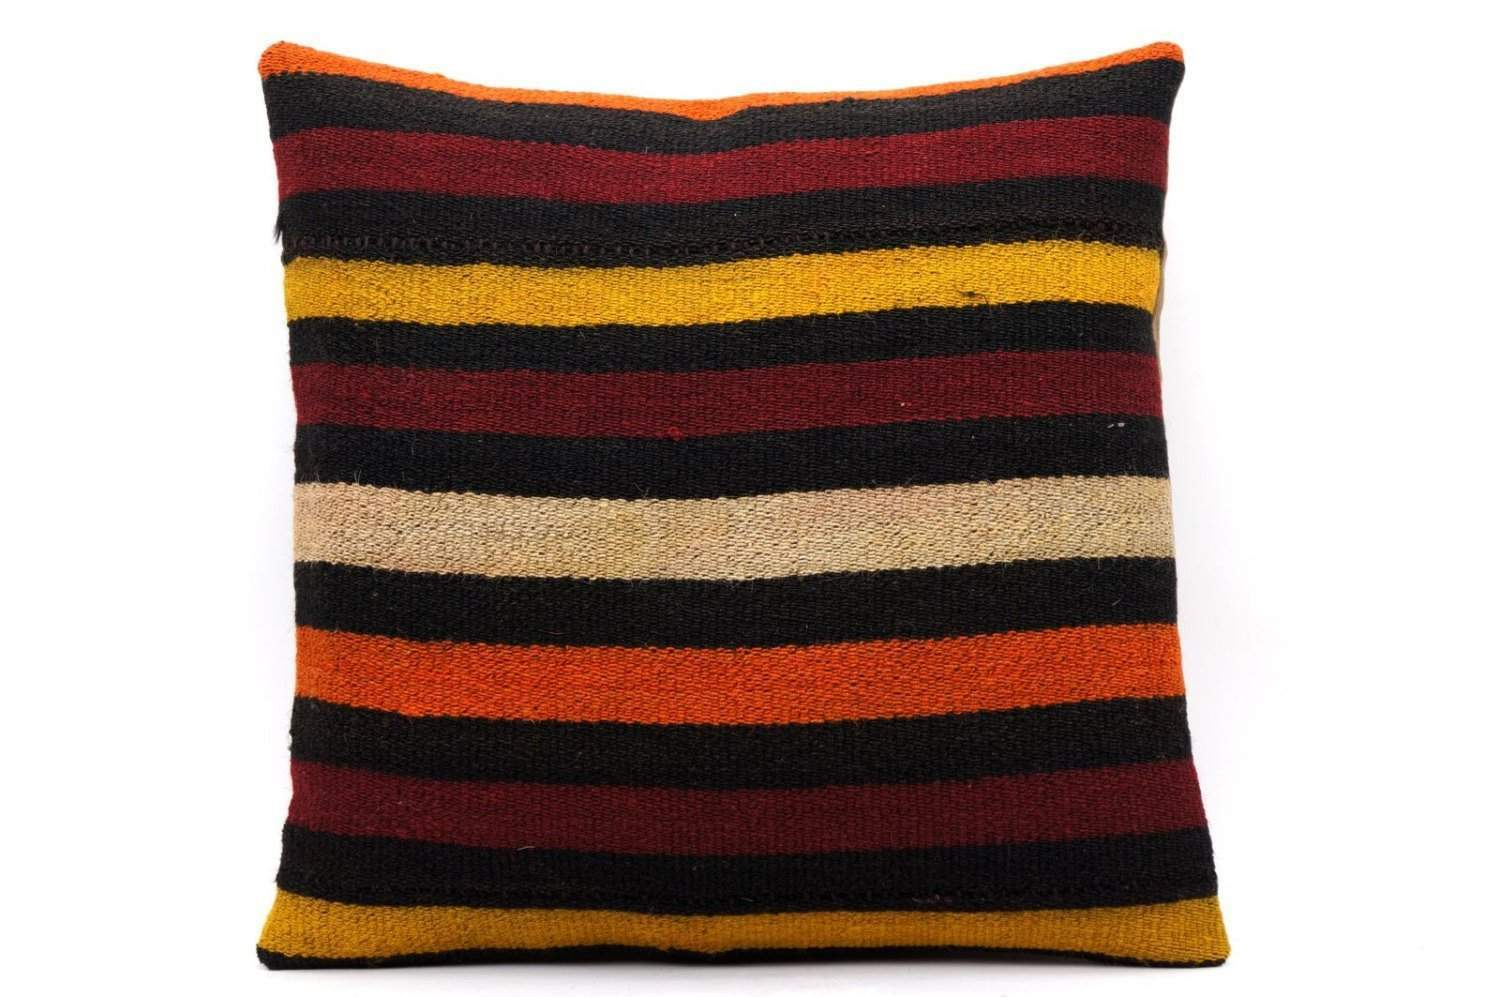 16x16 Vintage Hand Woven Kilim Pillow 547 ,black, beige, yellow,claret red, orange, striped